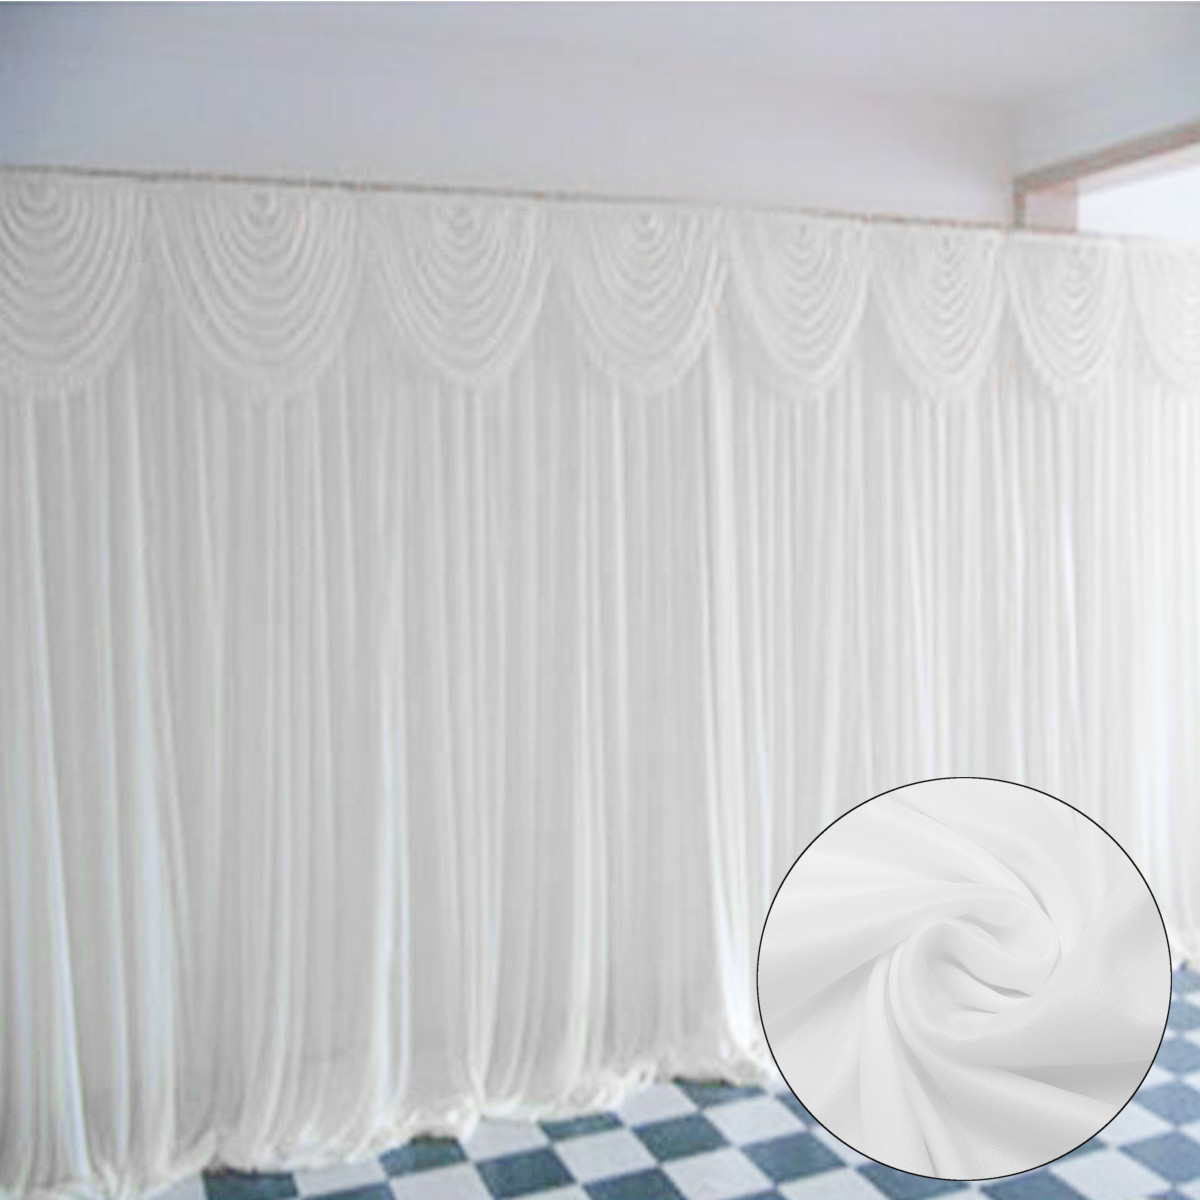 Draping Curtains Meigar Wedding Stage Backdrop 118 X118 Photography Background Draping Swags Drape Curtains Wedding Party Decorations